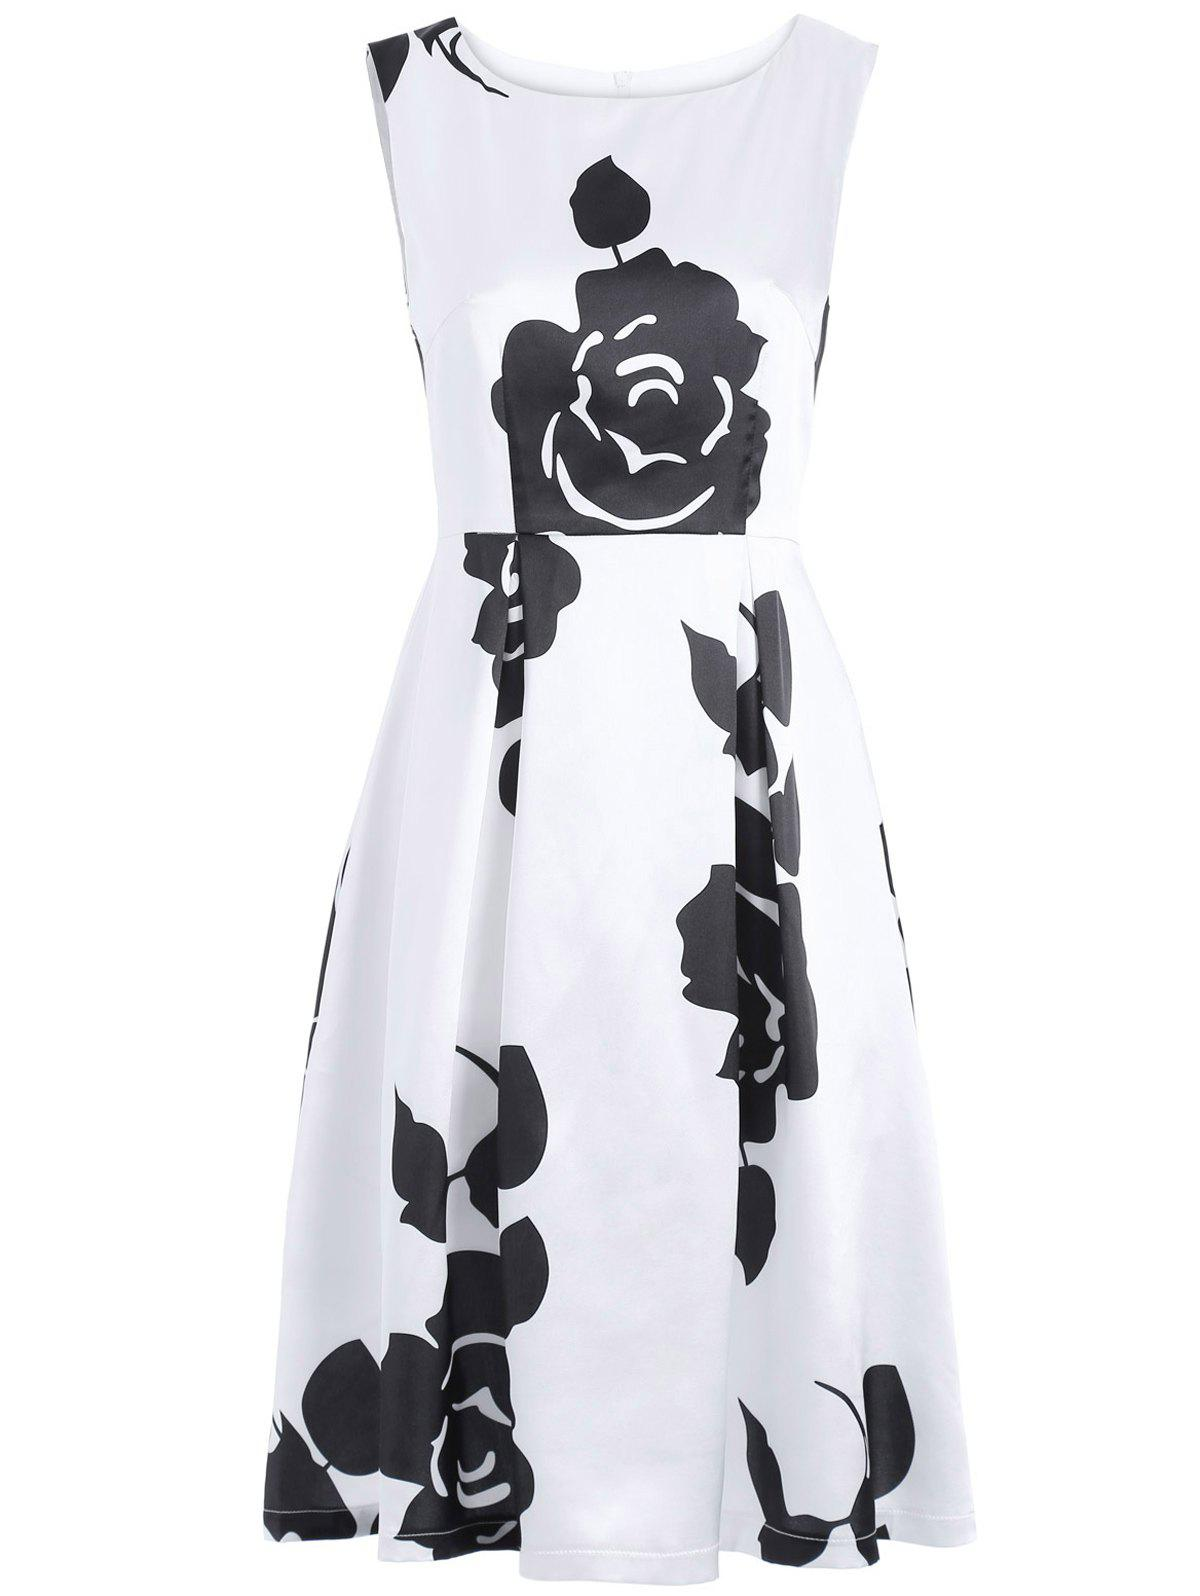 Floral Print Sleeveless Round Neck Dress - WHITE/BLACK XL